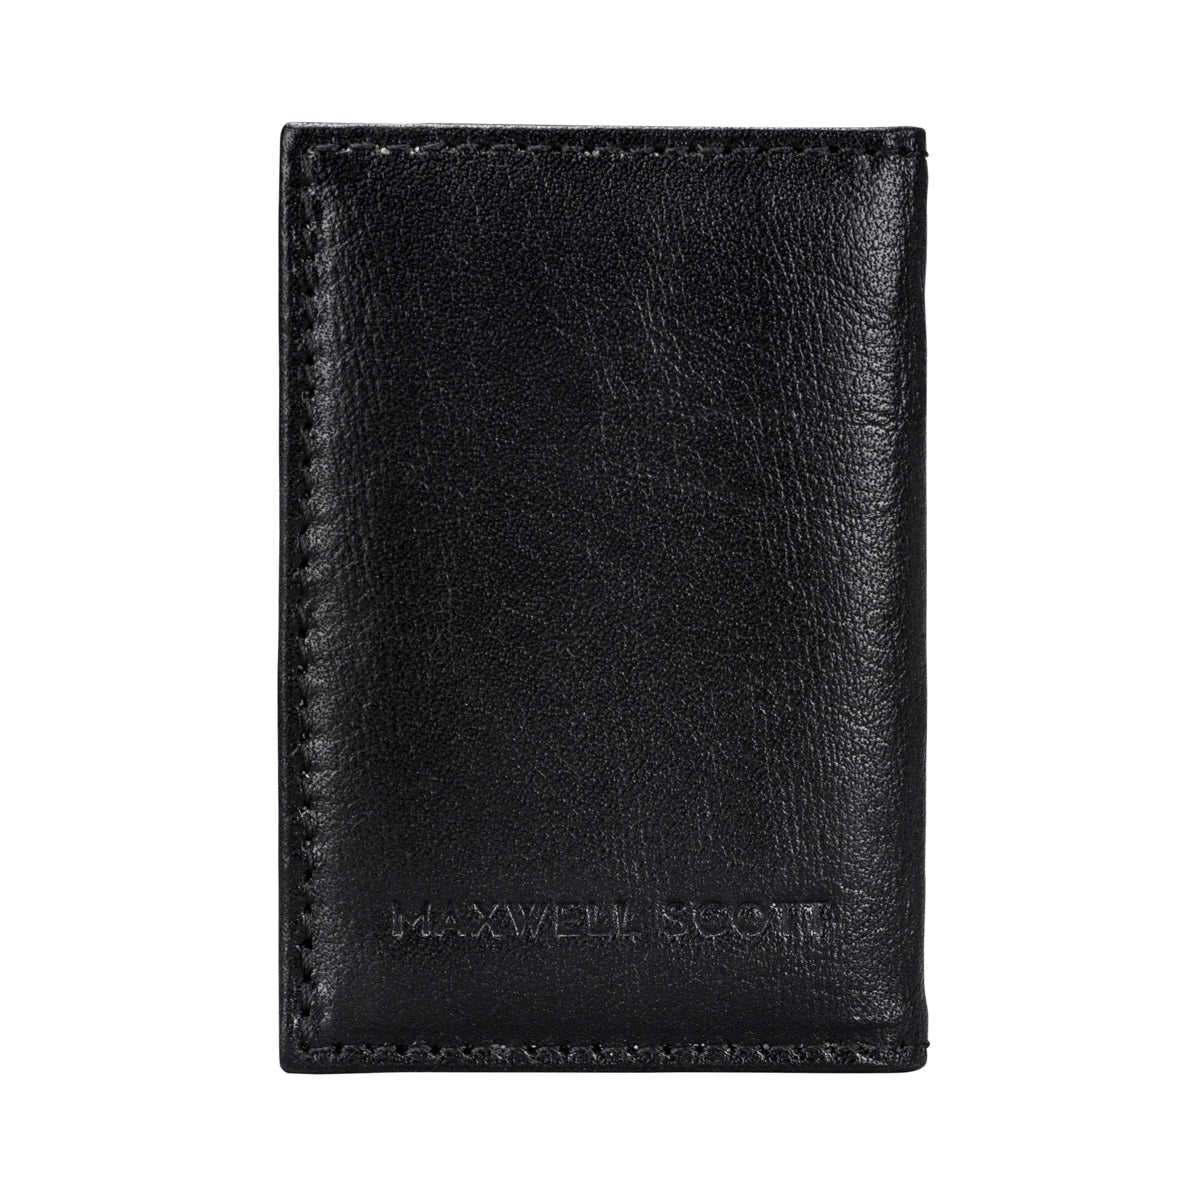 Image 2 of the 'Caldana' Black Mini Pocket Veg-Tanned Leather Address Book